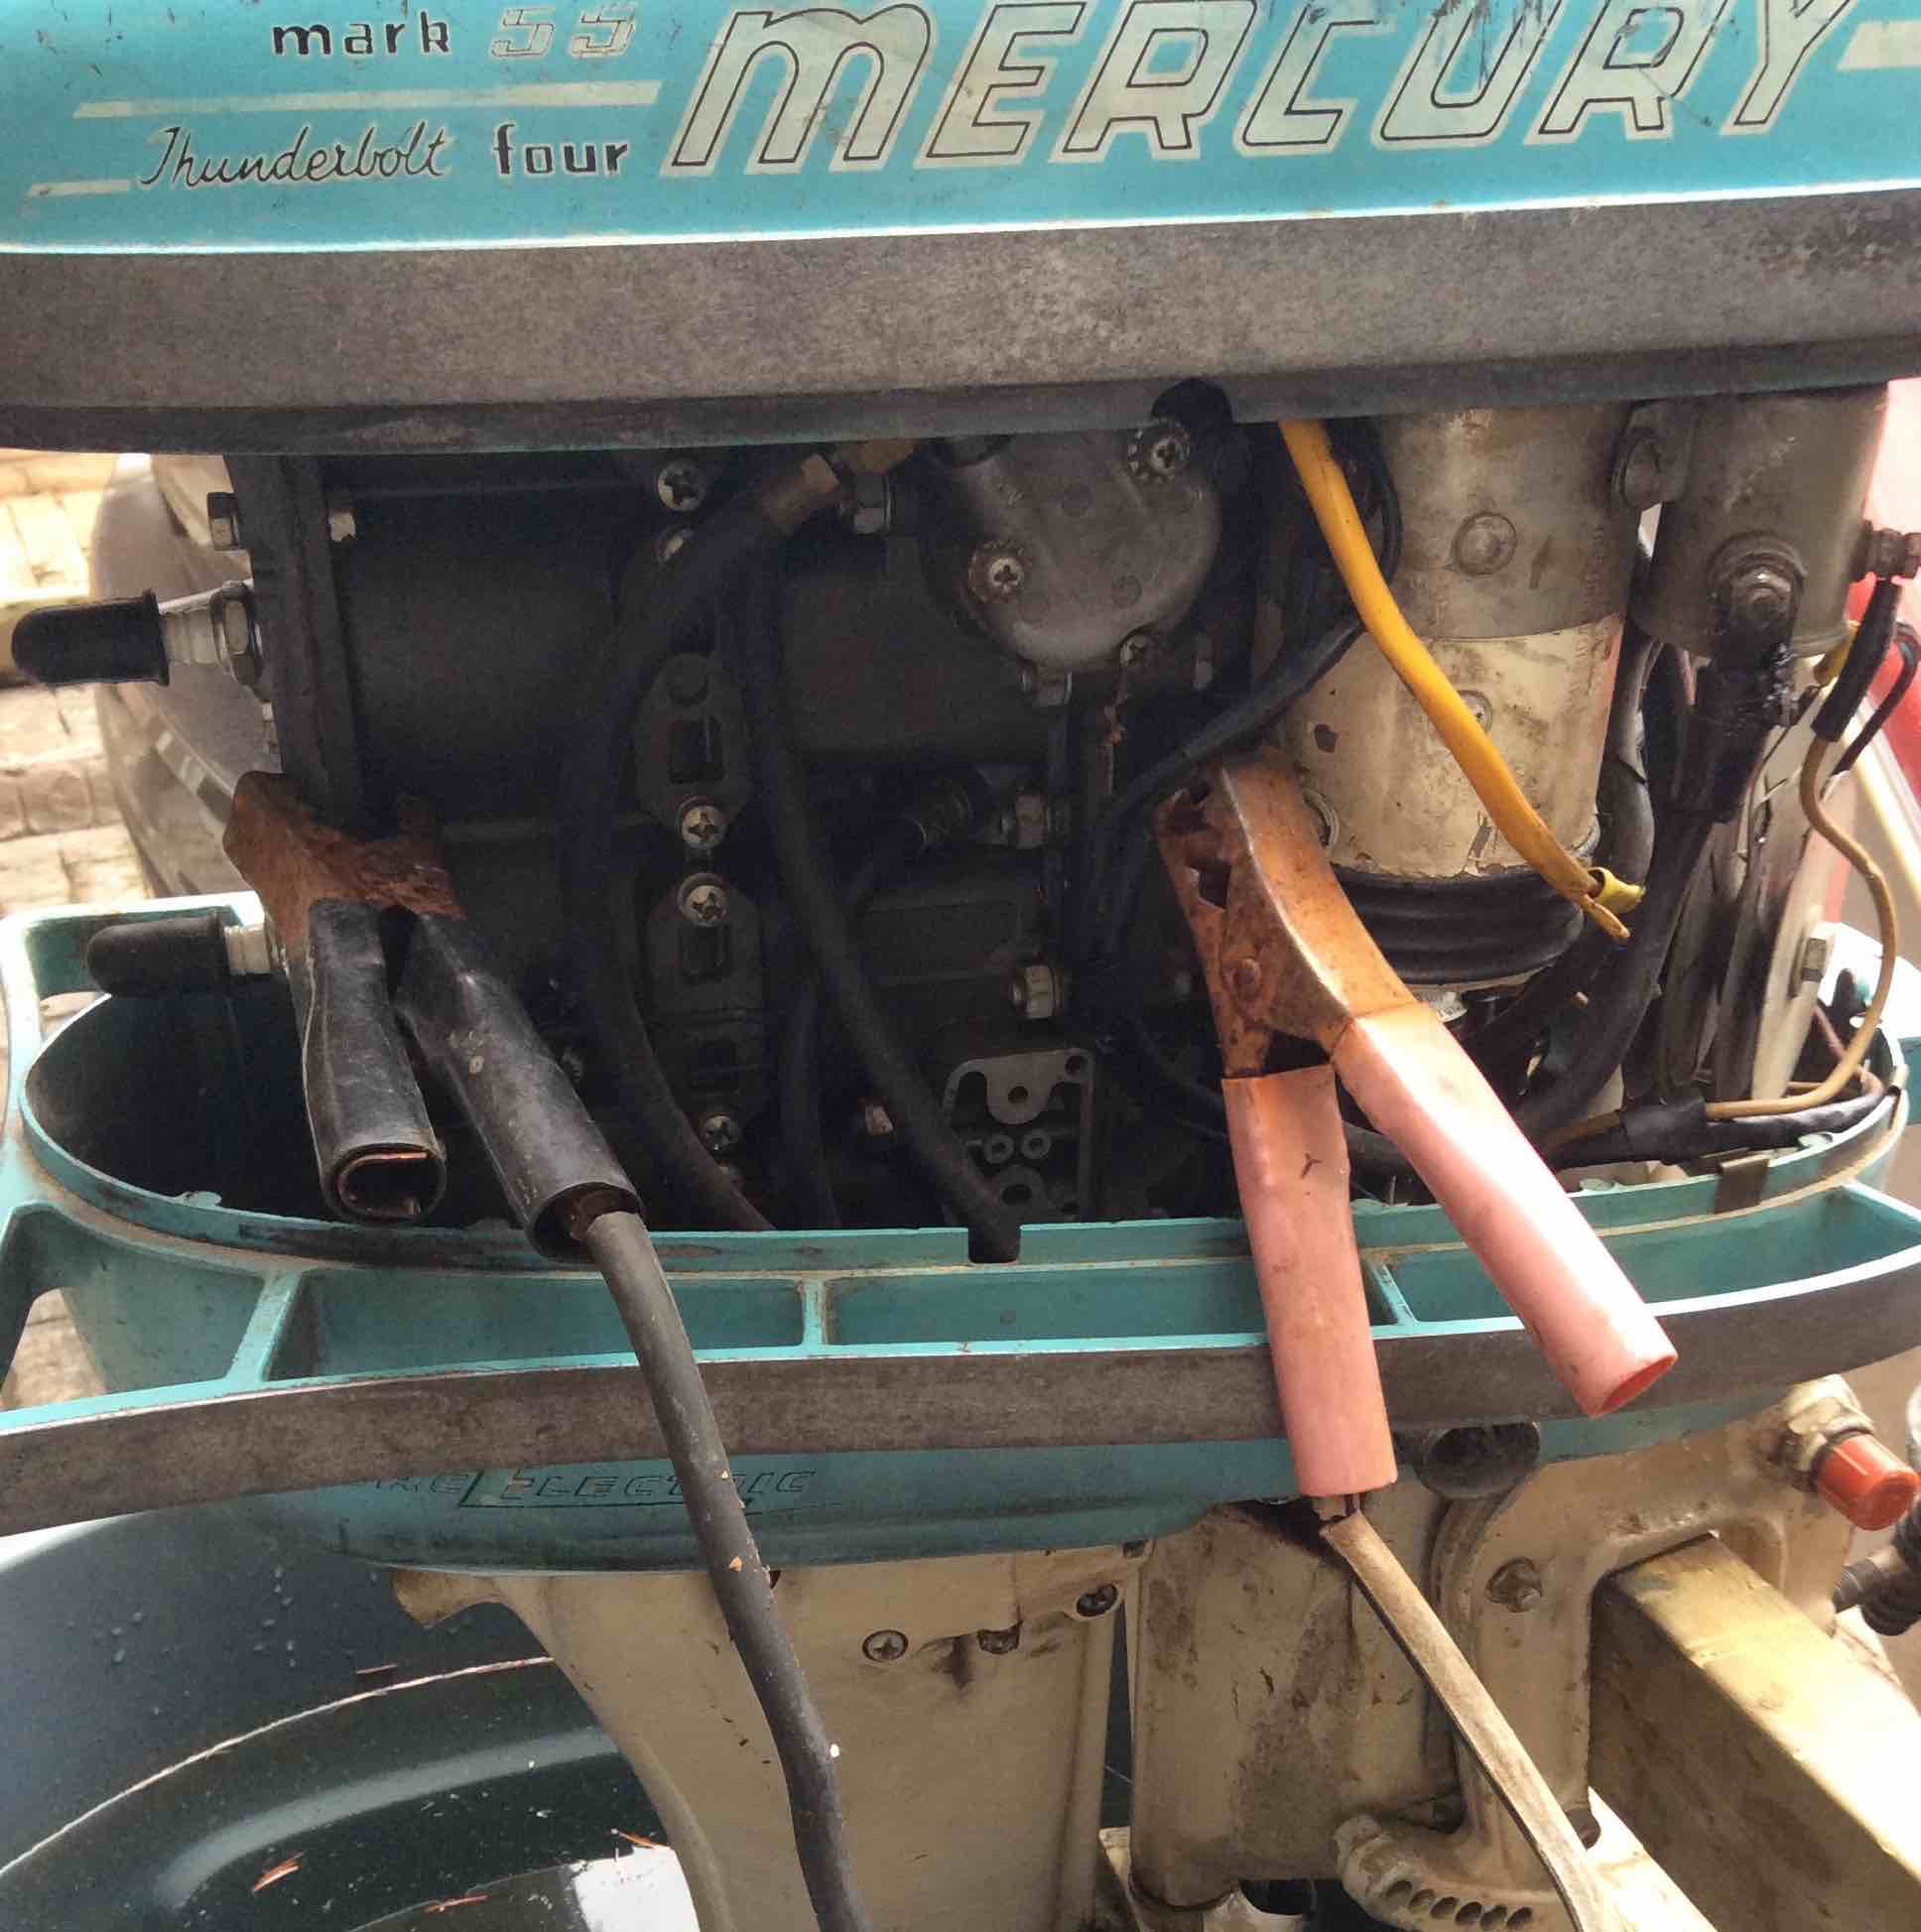 Fiberglassics 1956 Mercury Mark 55 E How To Jump Start It Wiring Diagram Check